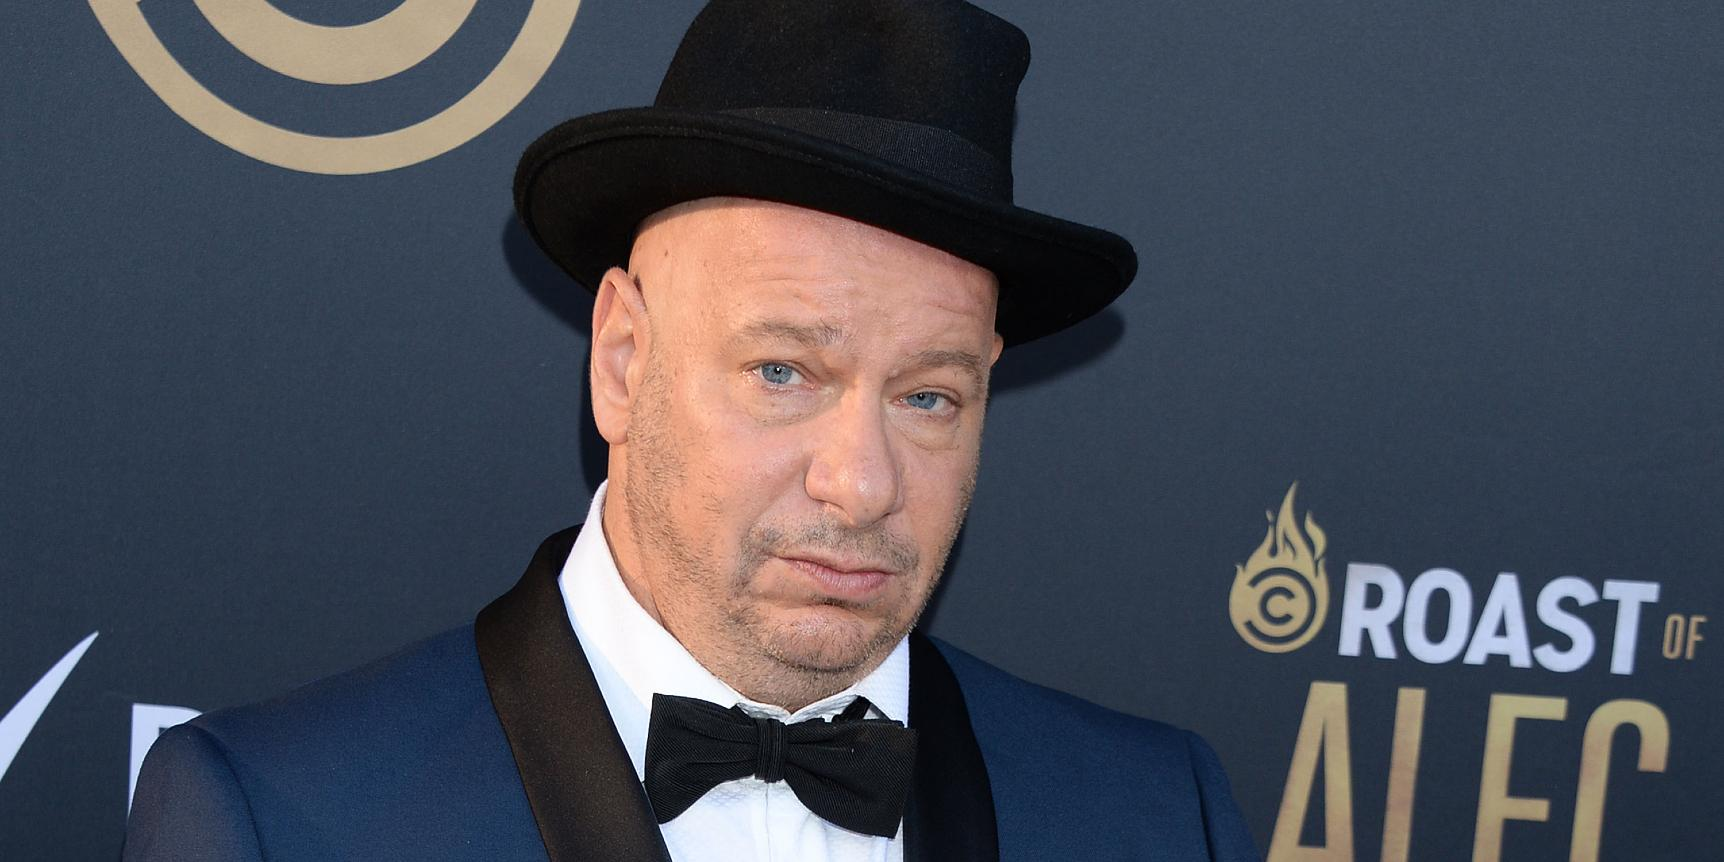 Jeff Ross at the Comedy Central Roast of Alec Baldwin